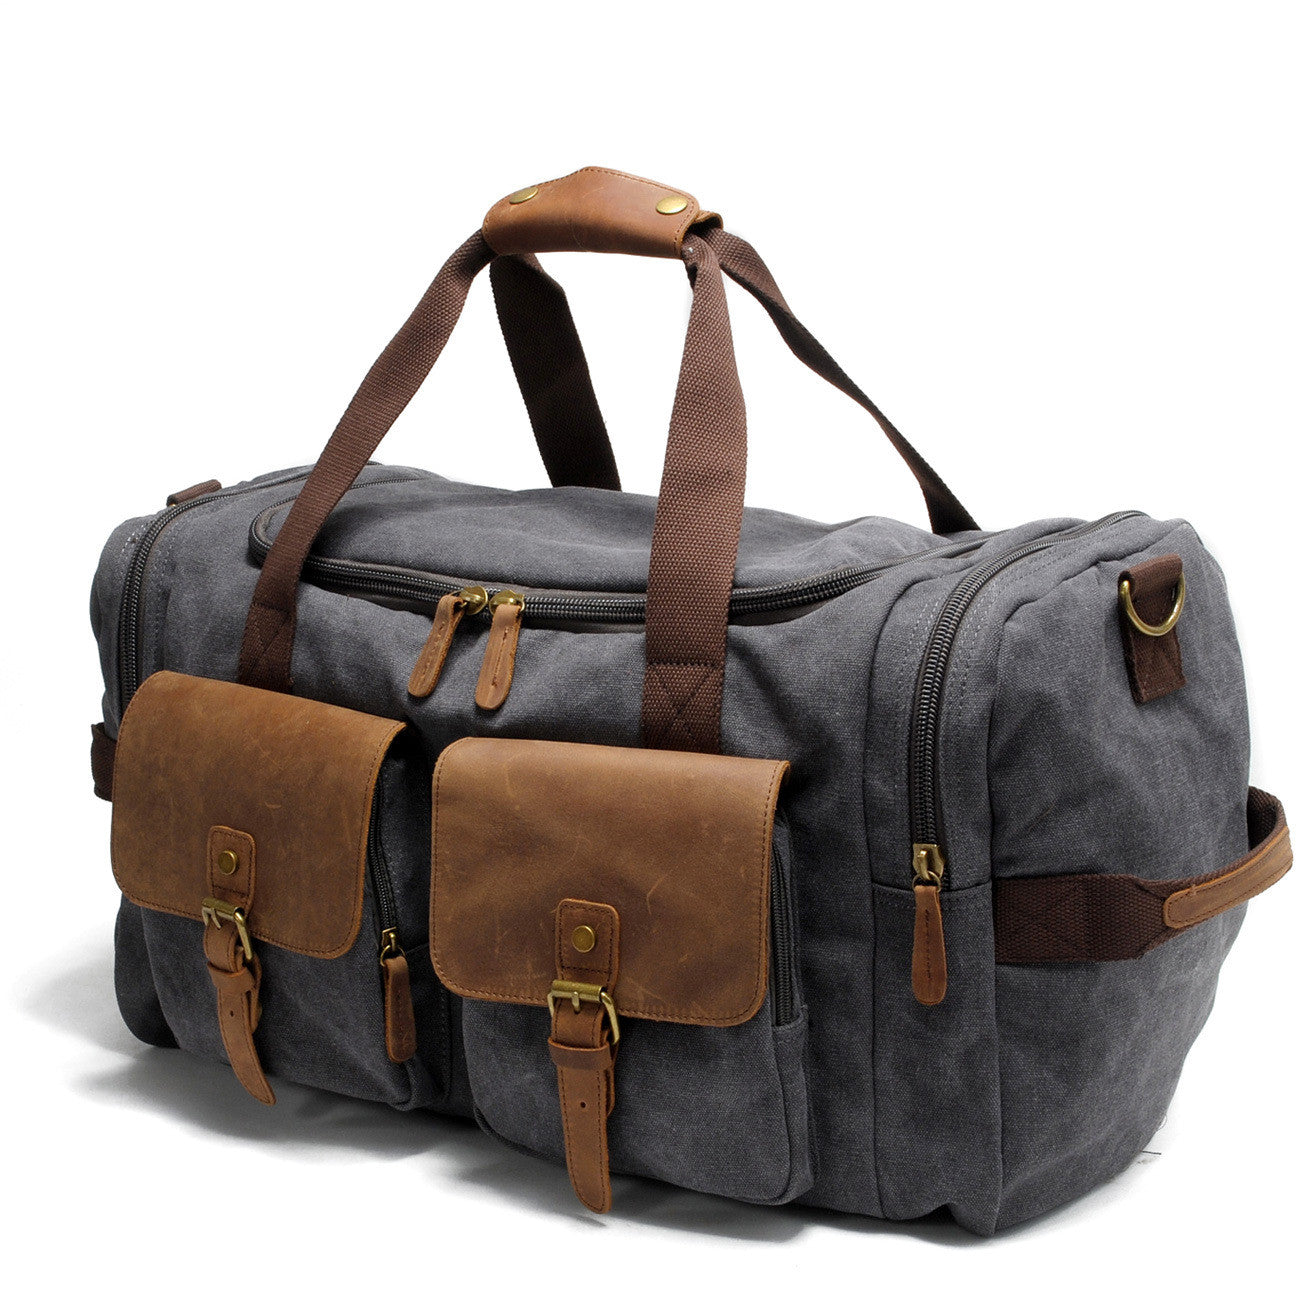 Vintage Canvas Messenger Bag Big Travel Bag 9133 - icambag